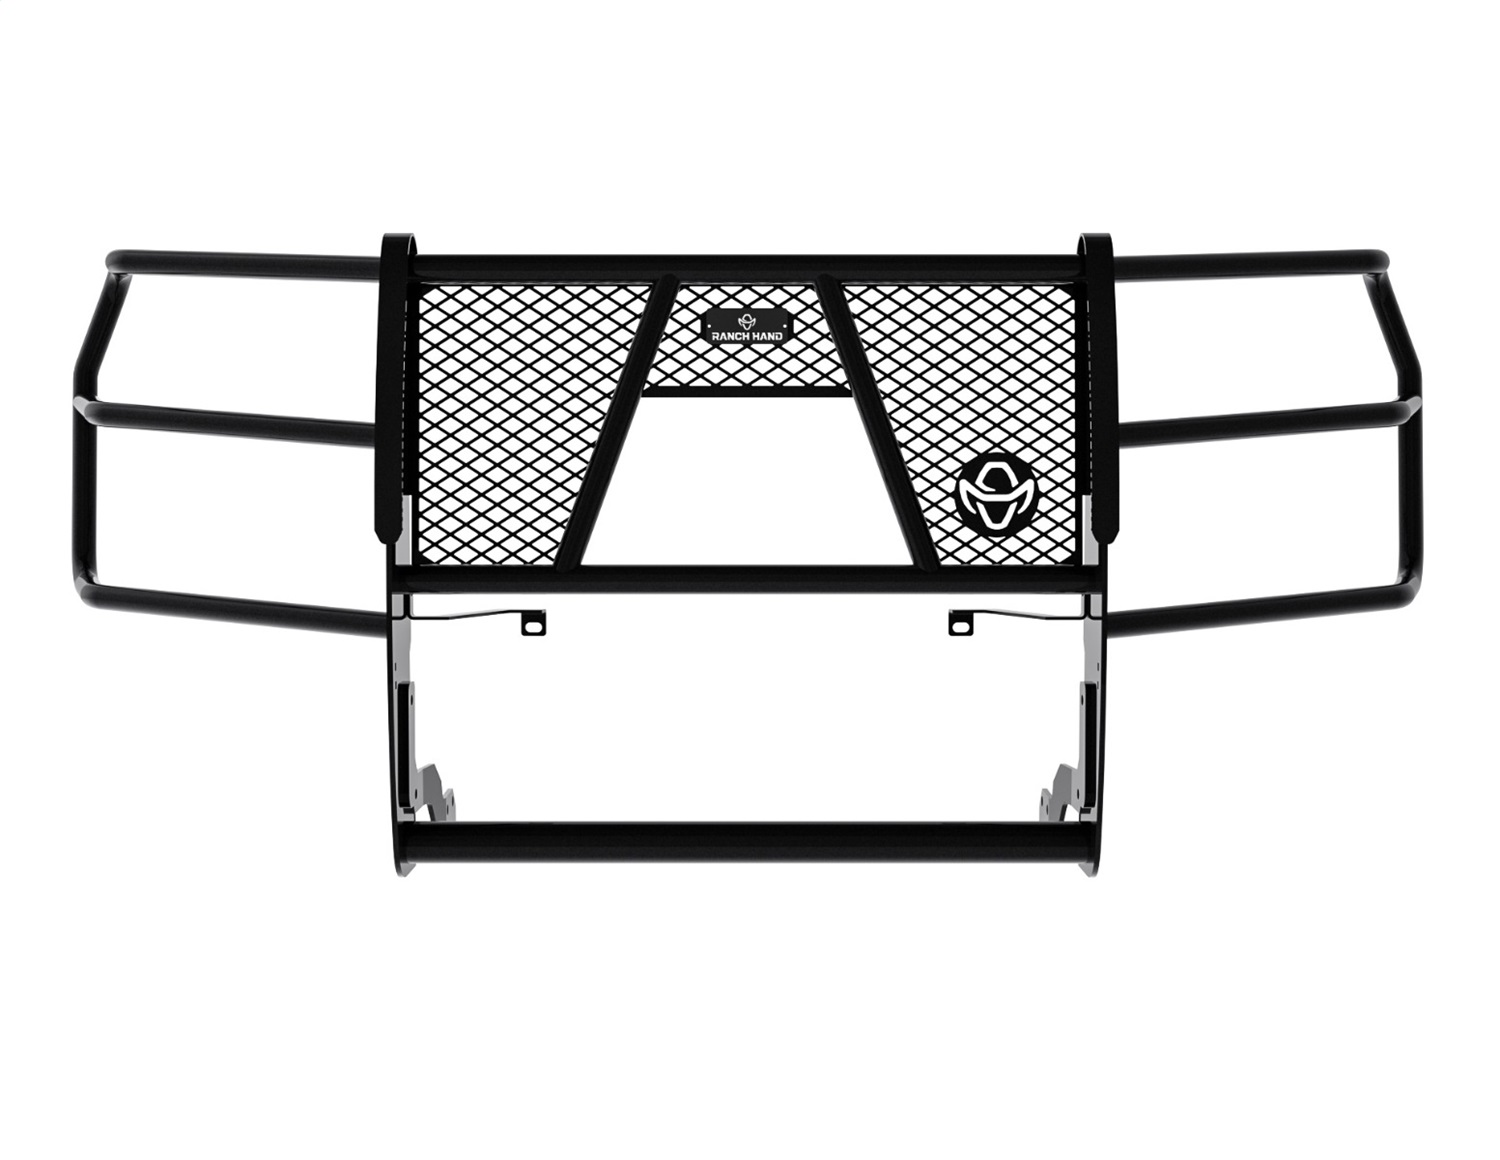 Legend Series Grille Guard, Retains Factory Tow Hook And Fog Lights, Must Use PSG19HBL1 For Sensors